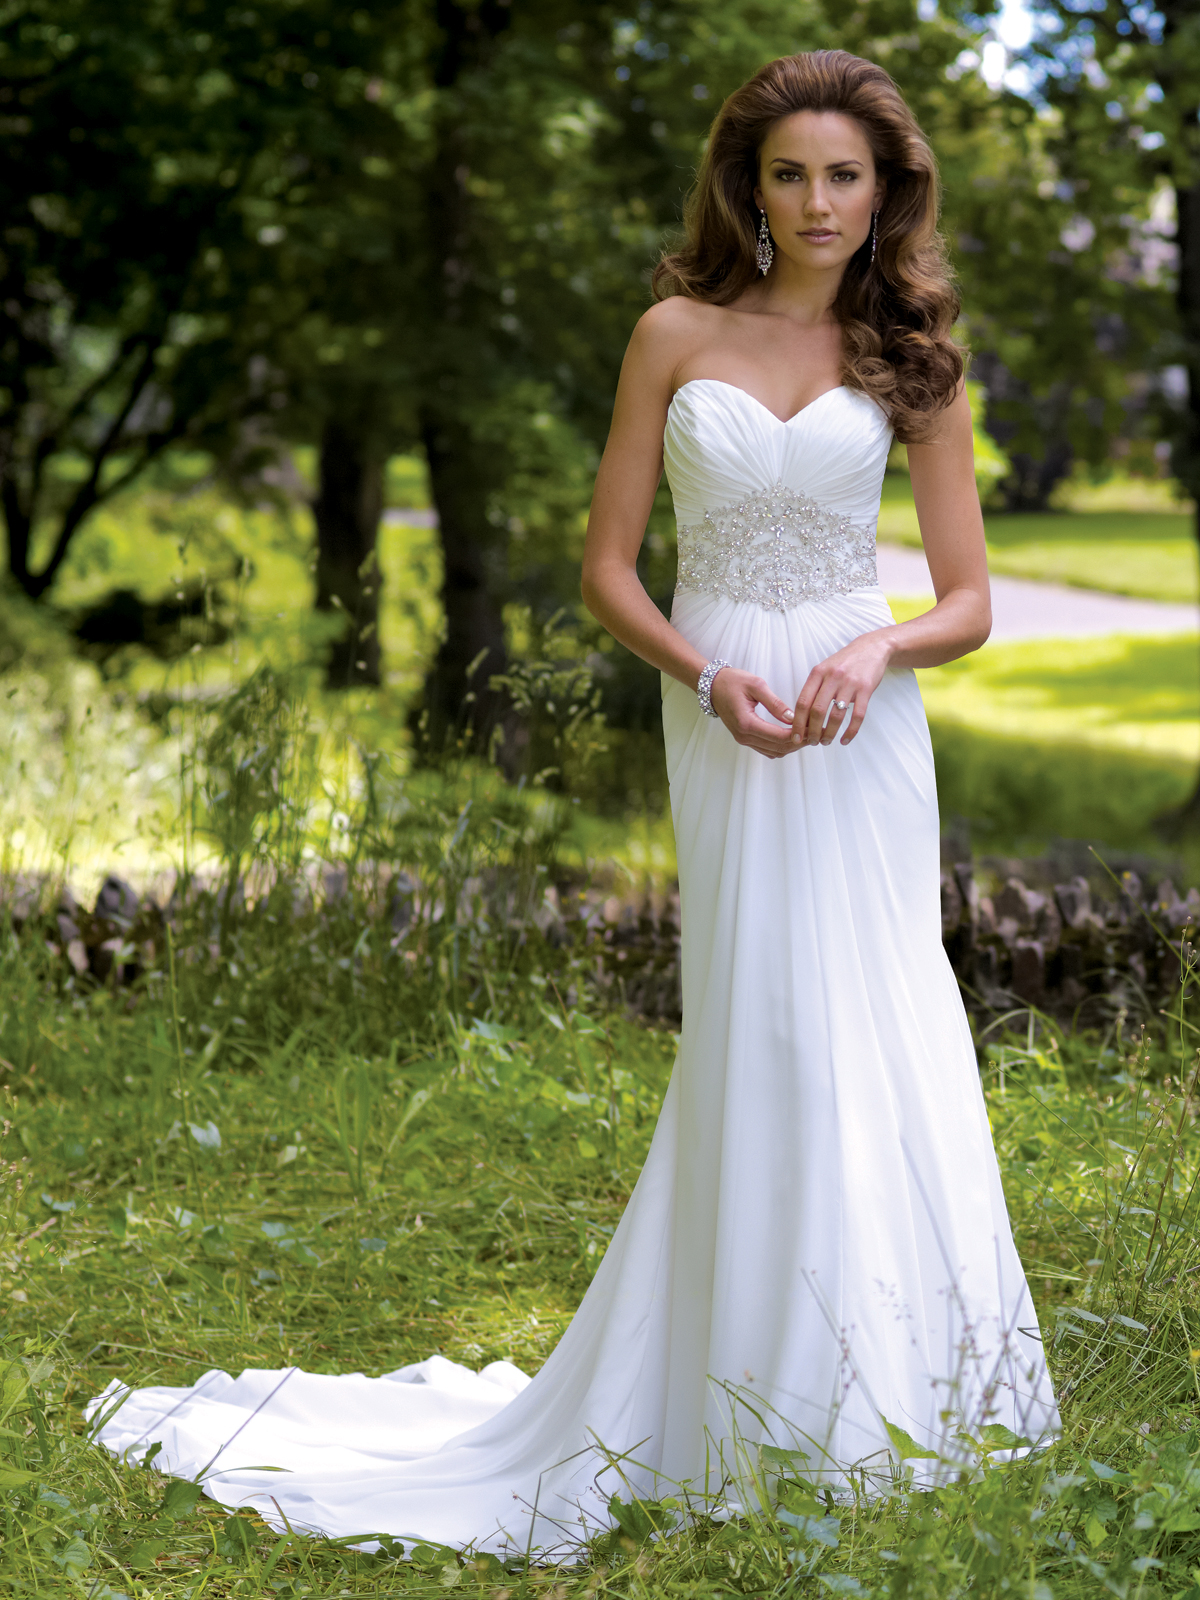 Wedding Dresses For Casual Wedding : Pics photos casual wedding dress